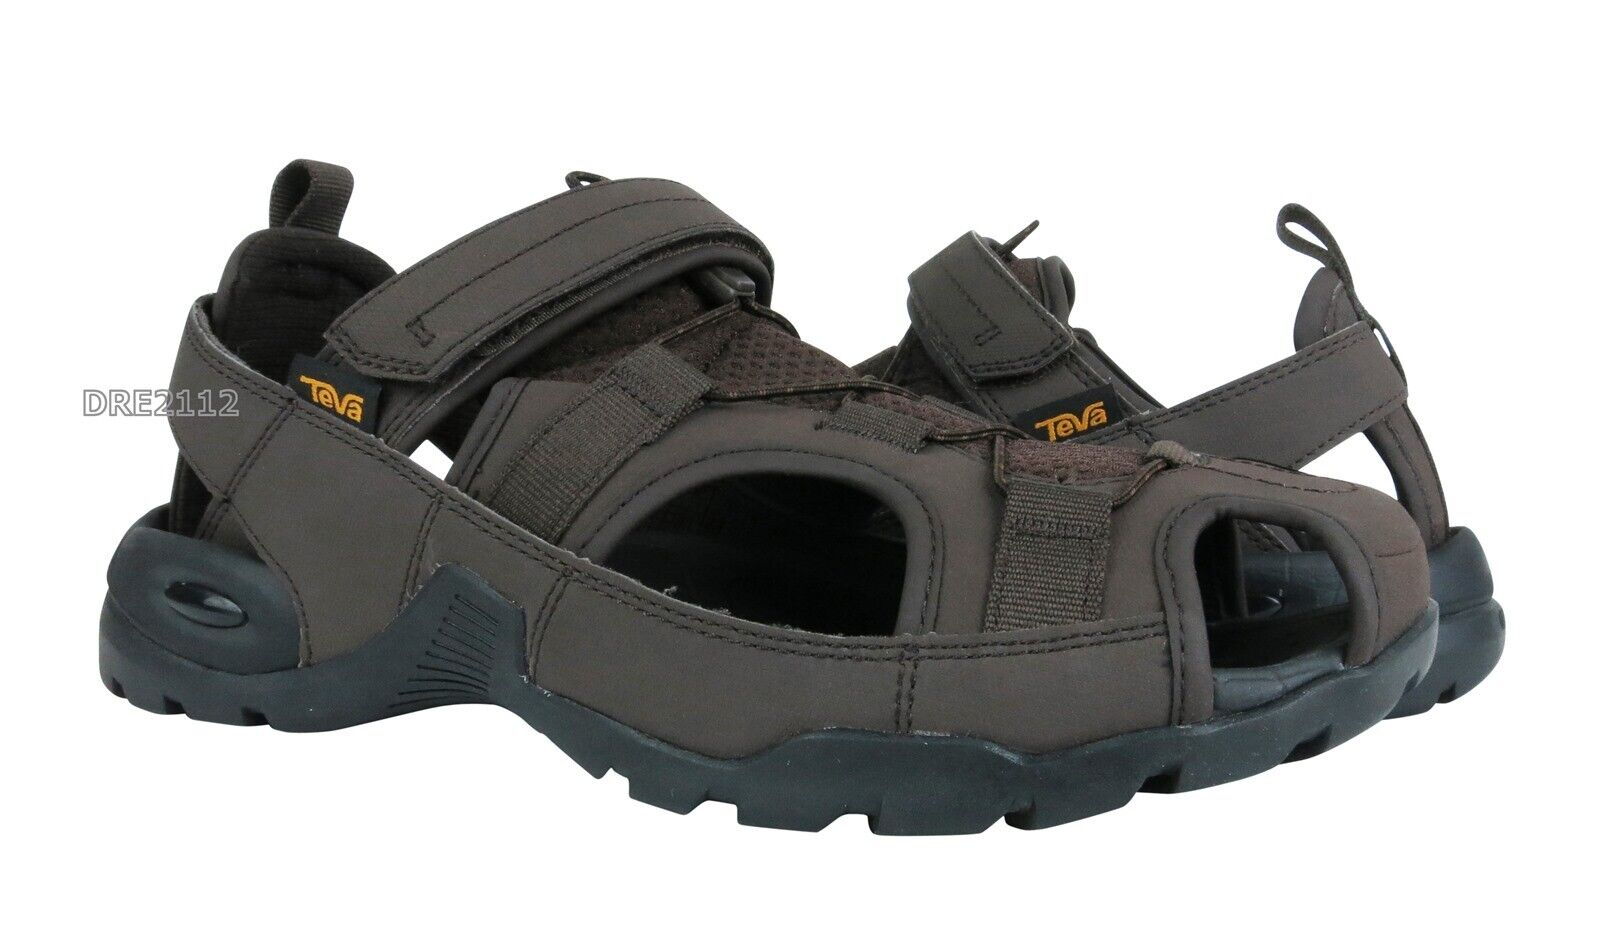 Teva Forebay 2 Turkish Coffee Sport Sandals schuhe Mens Größe 12 NEW